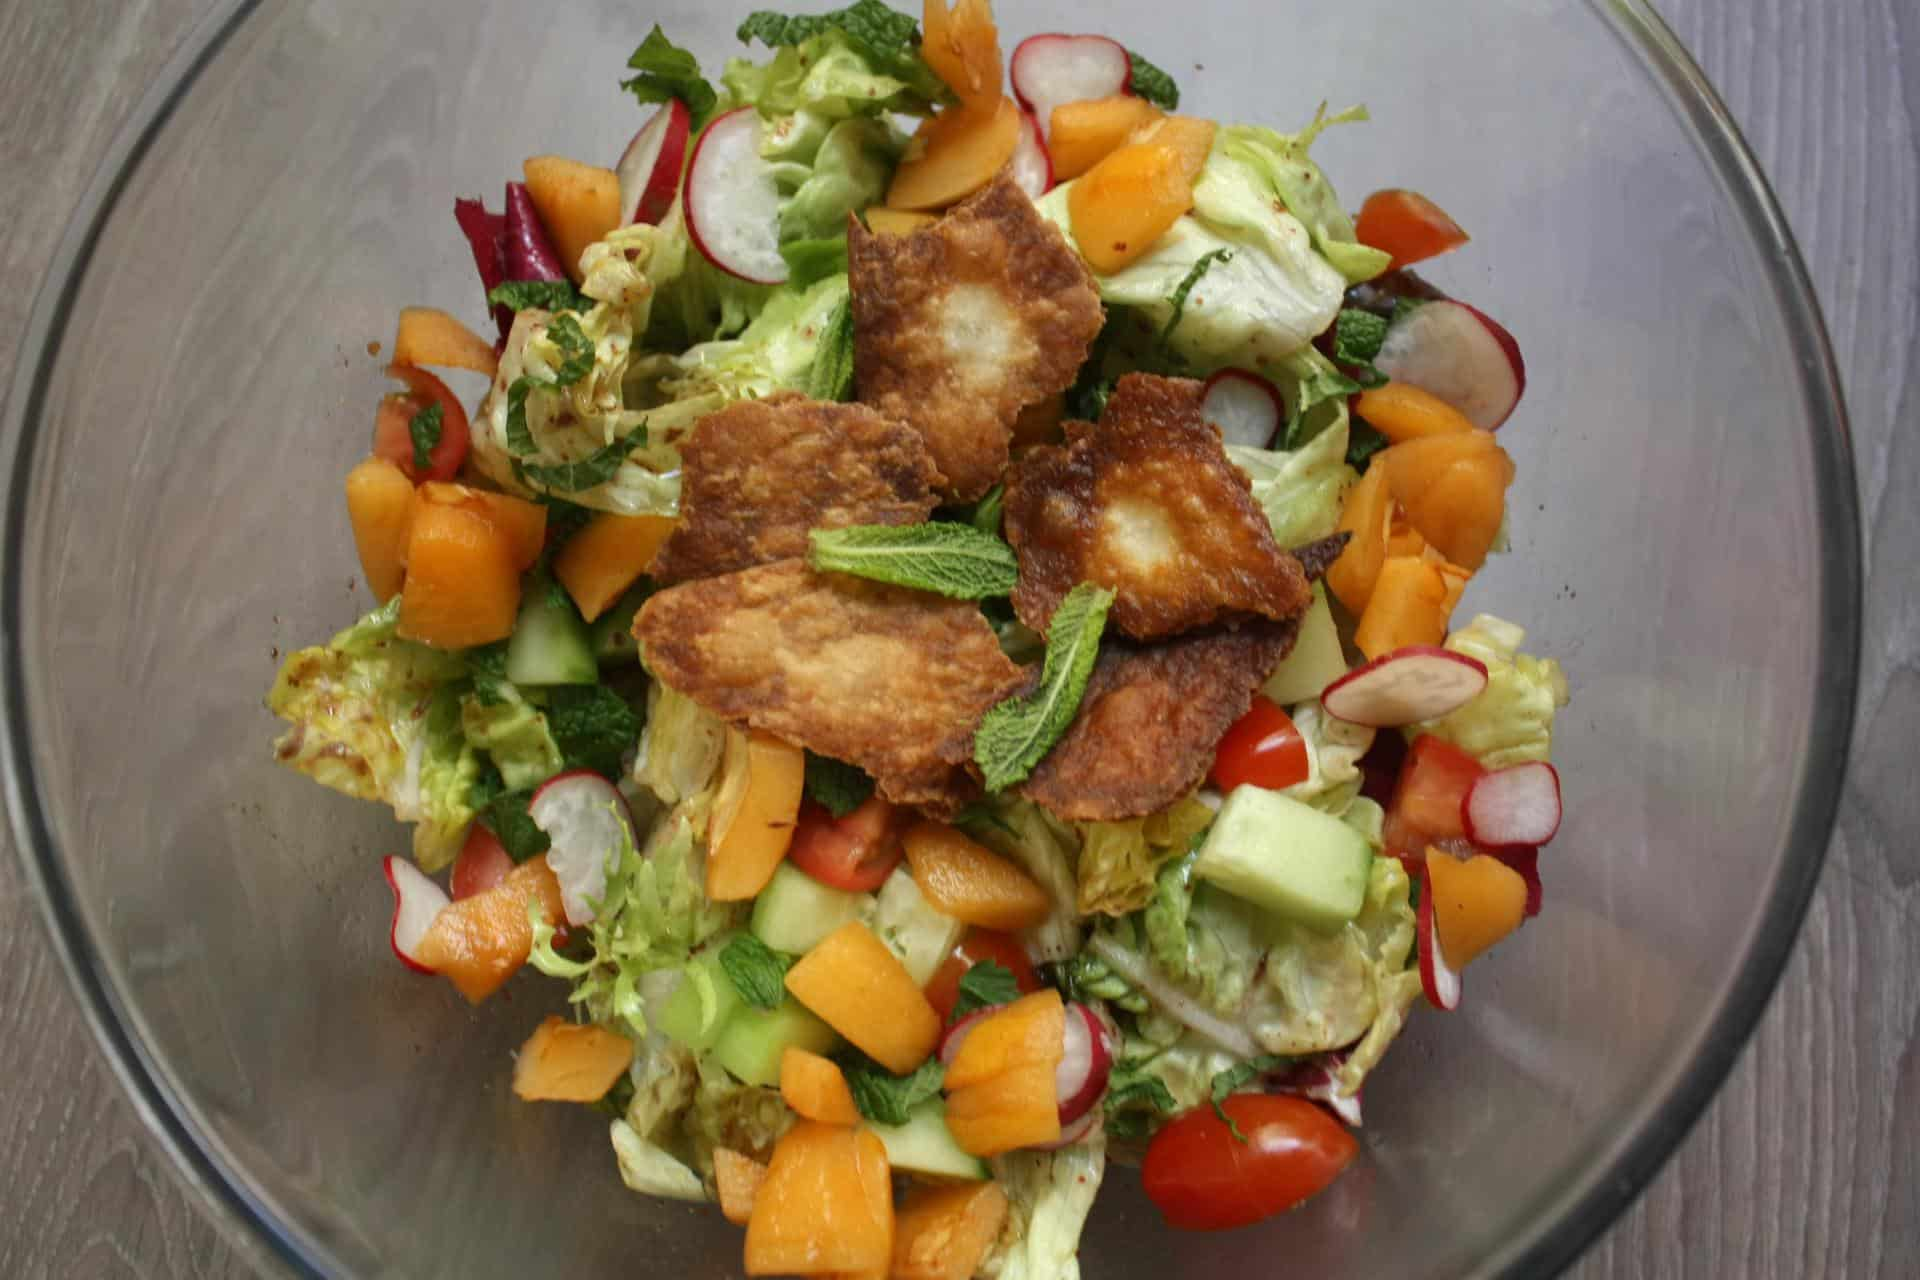 Fattoush Salad with Tangy Citrus Dressing and Loquats